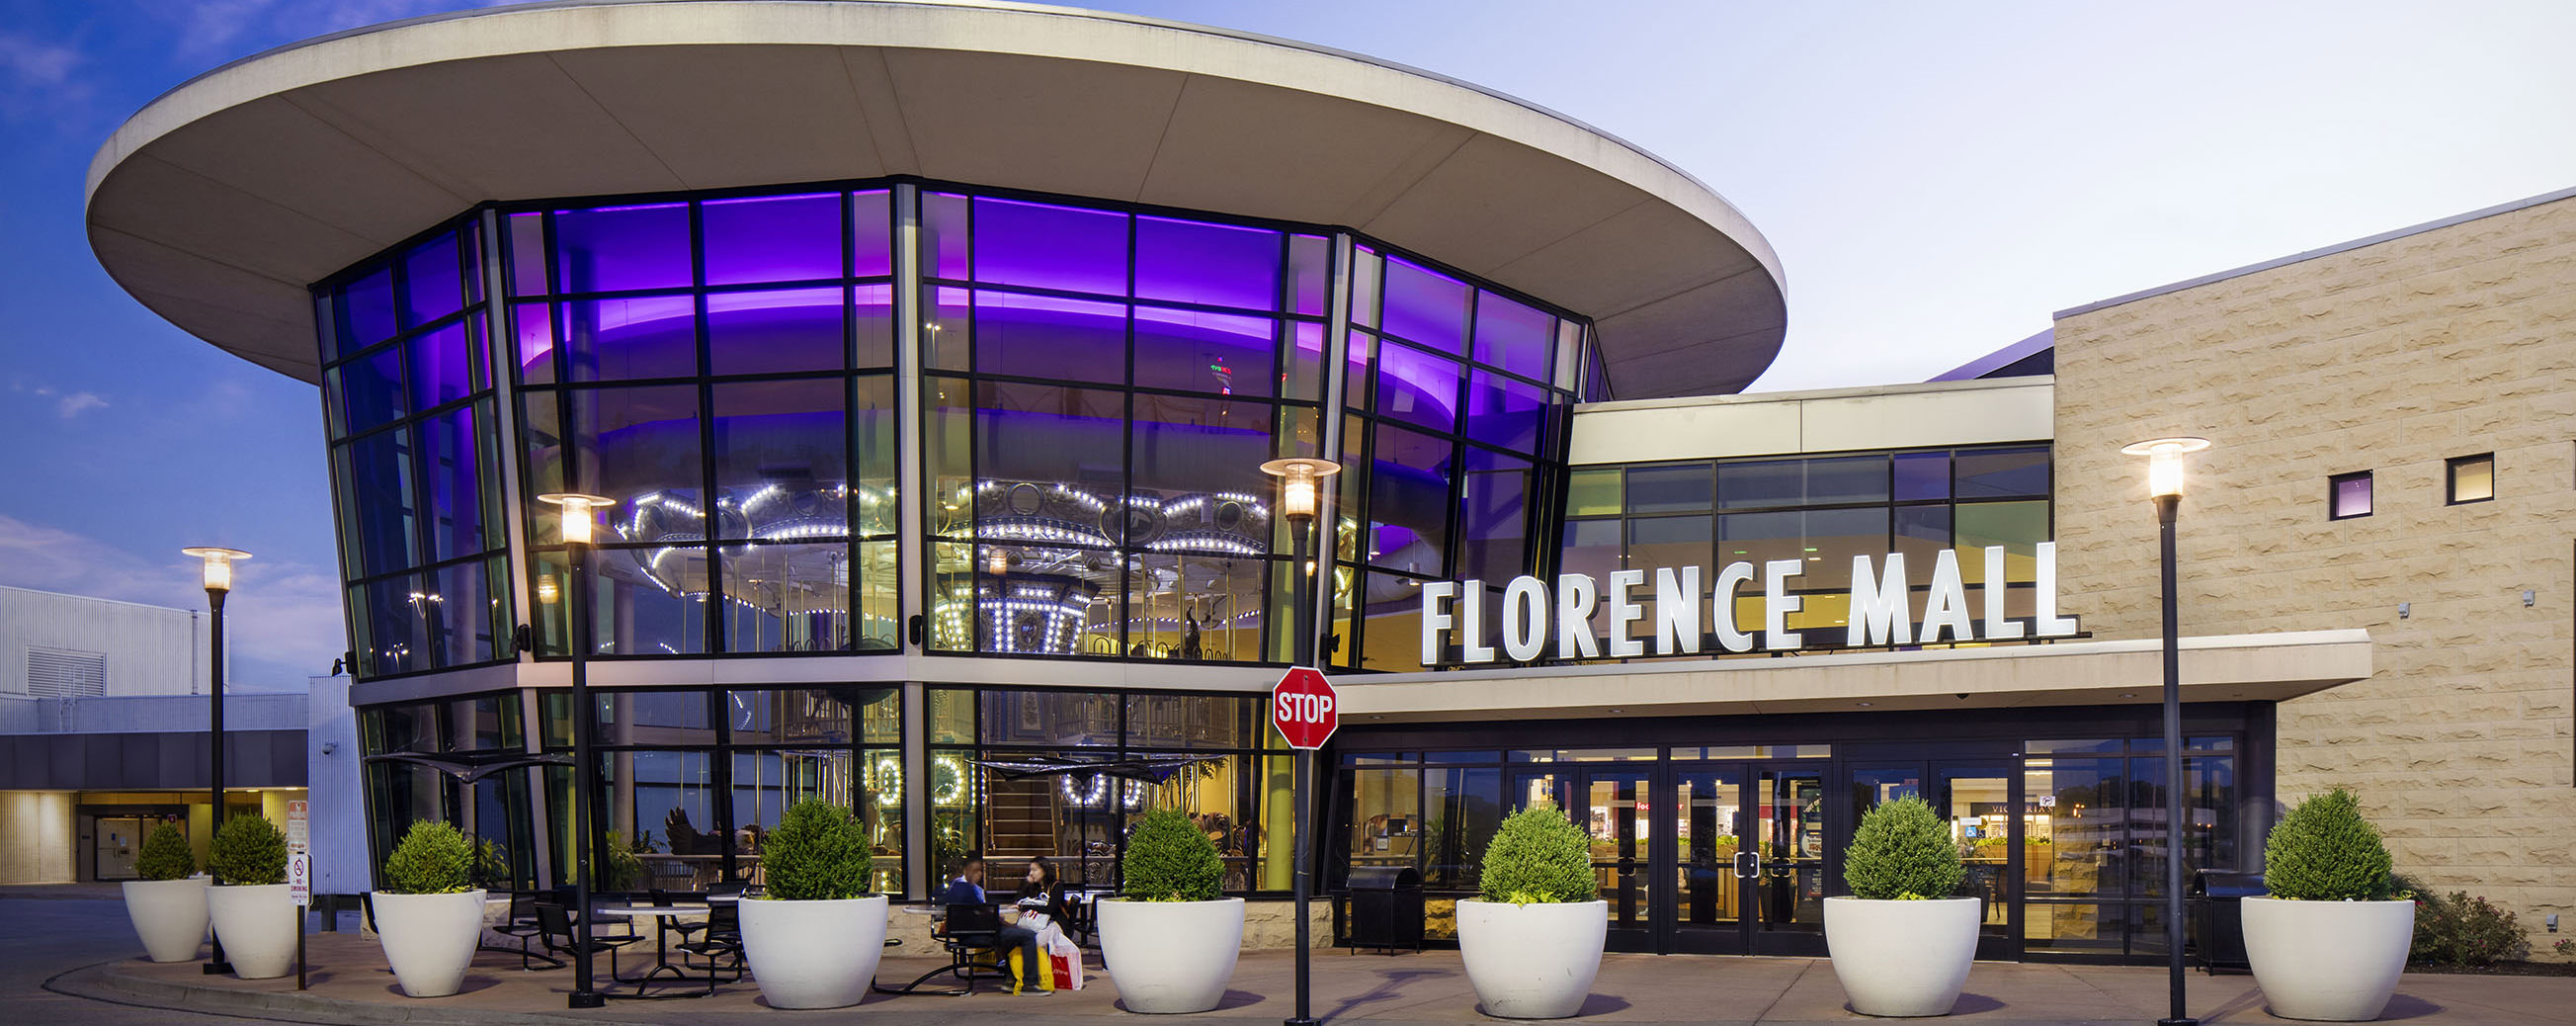 From just outside the Florence Mall, shopper can see the lit up carousal through the large glass windows.